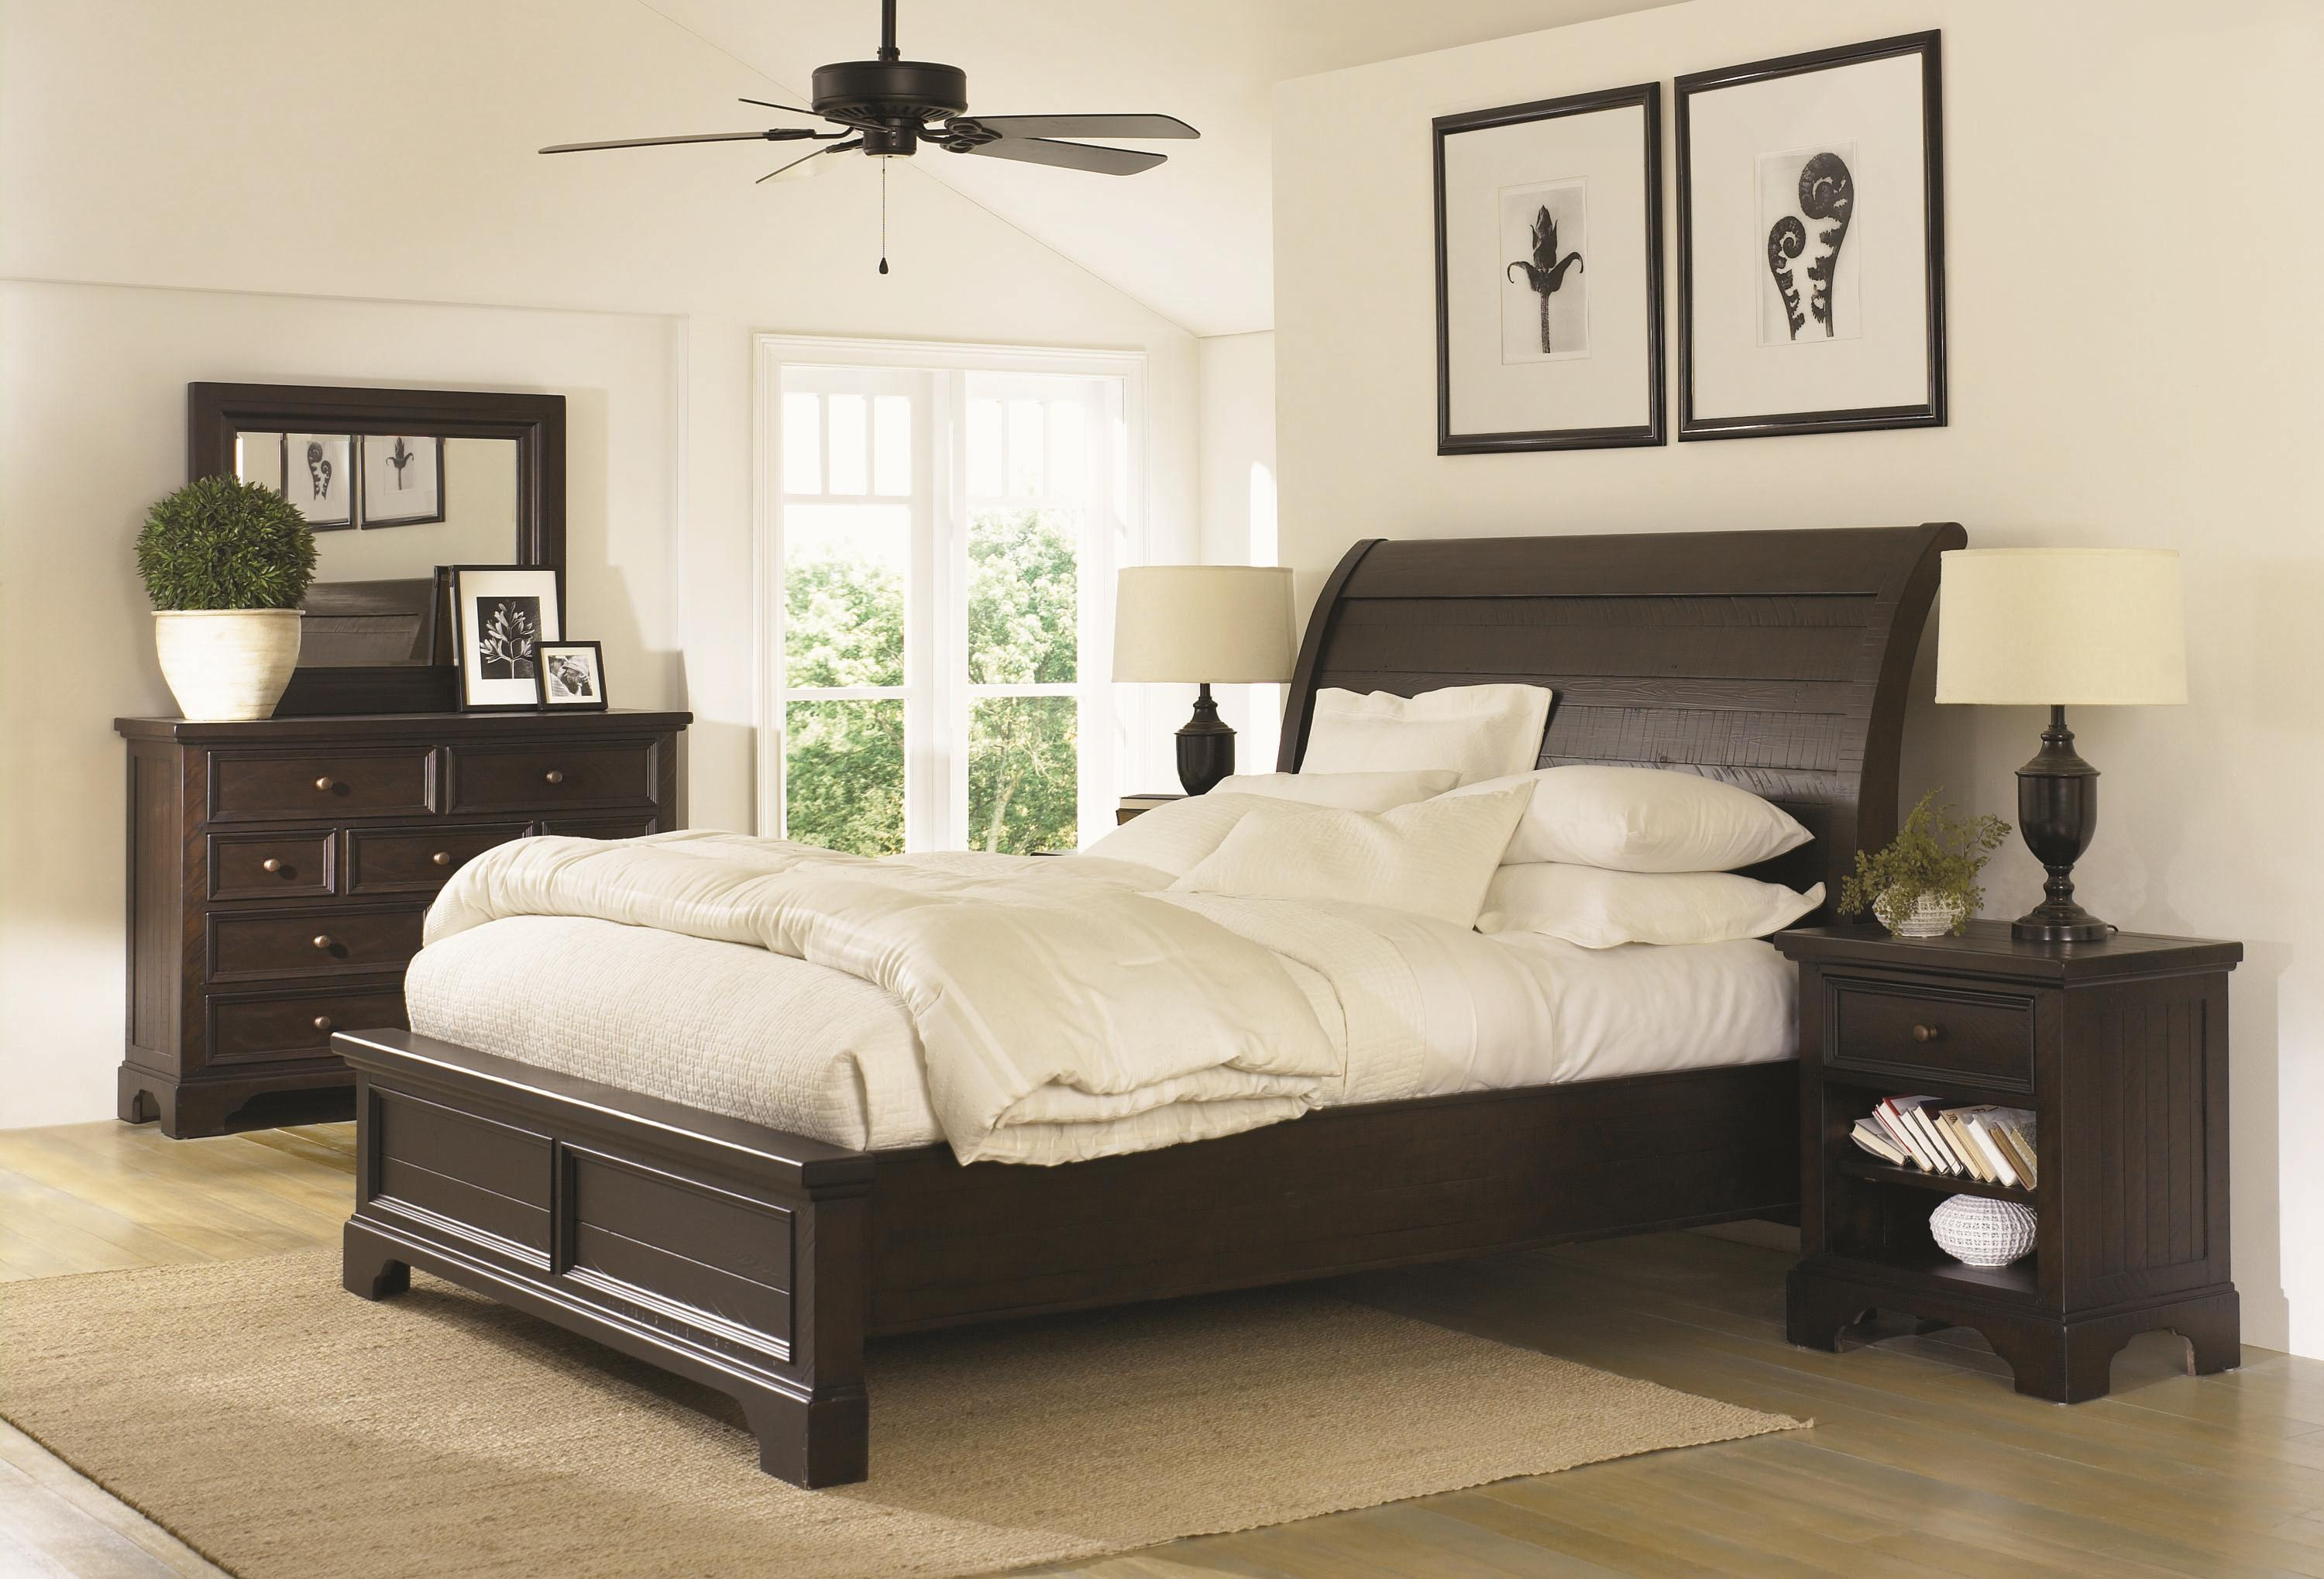 california king size sleigh bed with adjustable bed slats by aspenhome wolf and gardiner wolf. Black Bedroom Furniture Sets. Home Design Ideas